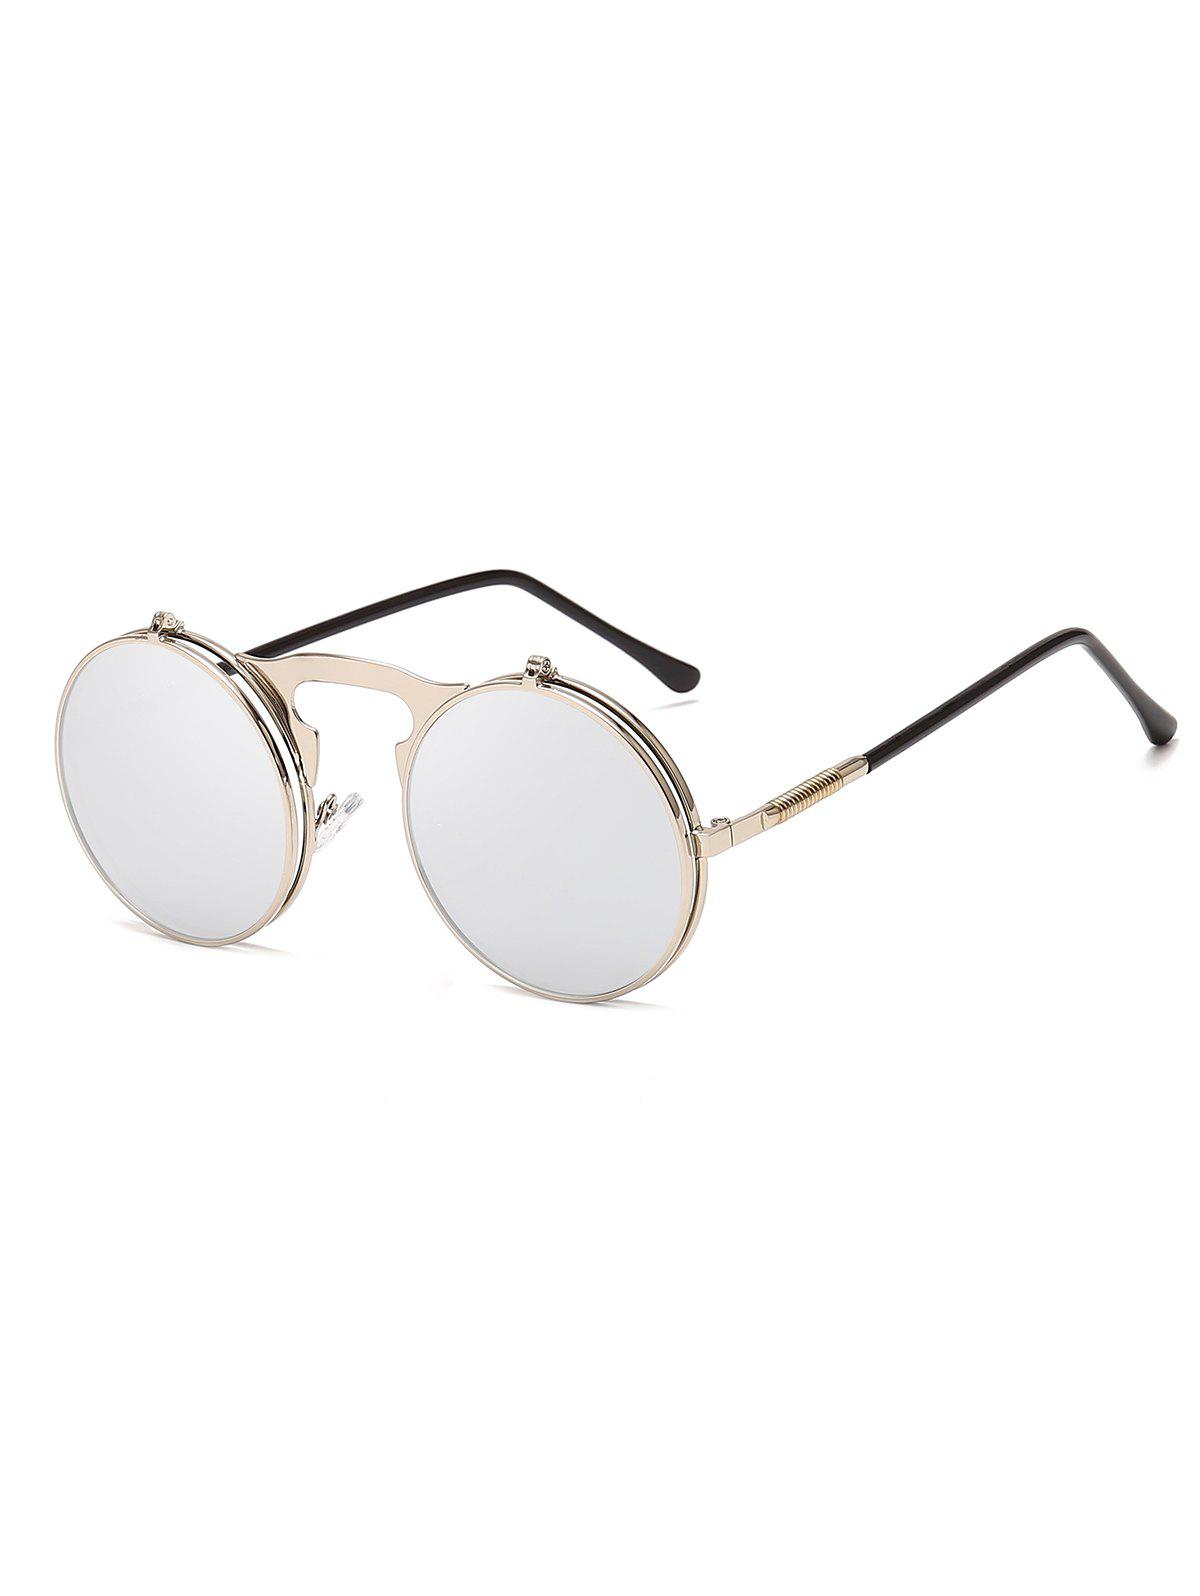 Metal Frame Flip Round Sunglasses - SILVER